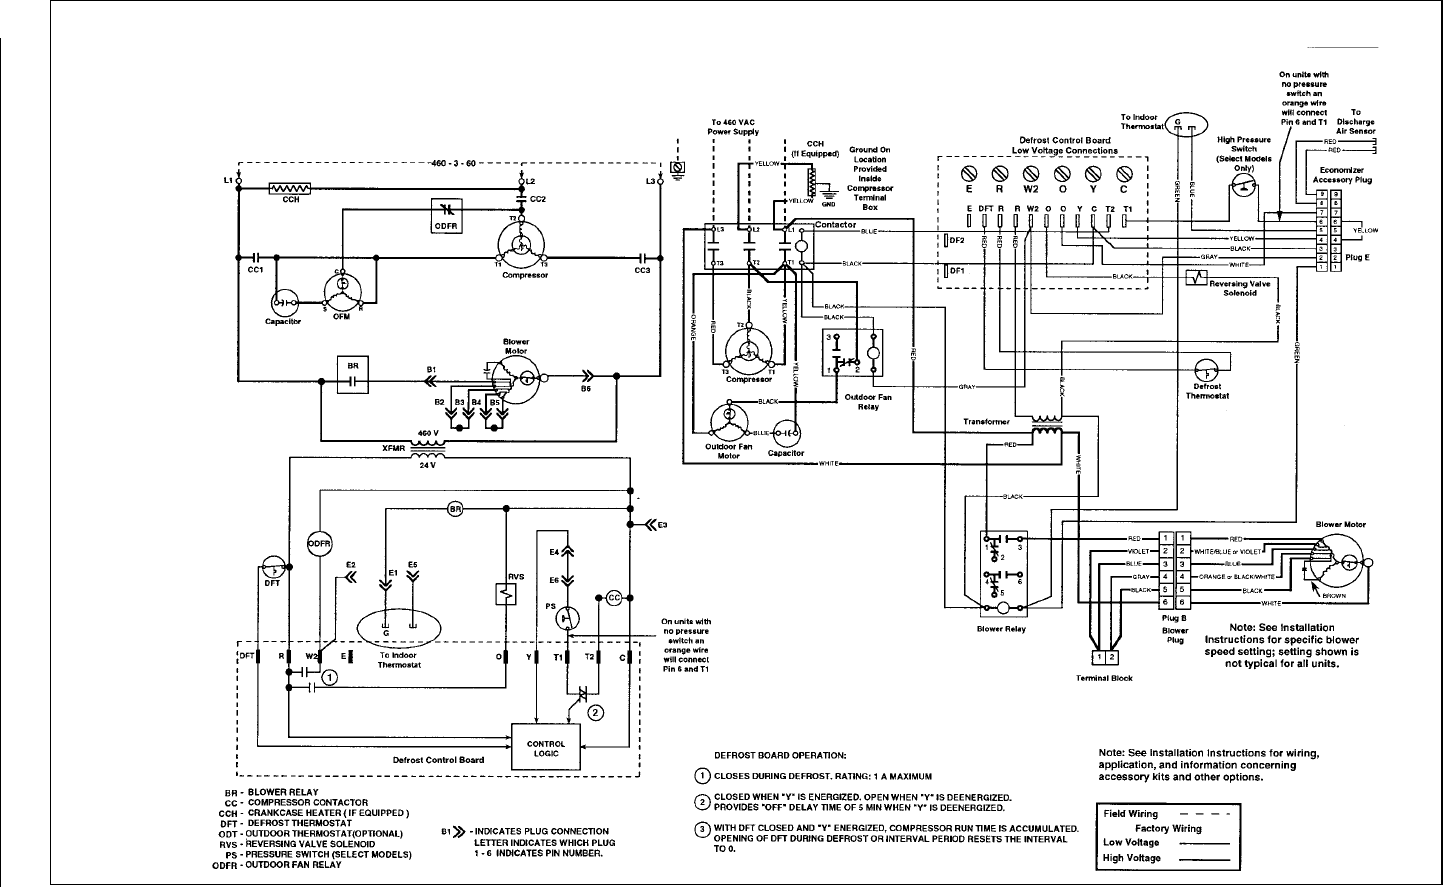 12ef14e5 f0fc 4598 8d26 d64902da494b bg12 wiring diagram for coleman furnace the wiring diagram nordyne heat pump wiring diagram at gsmx.co